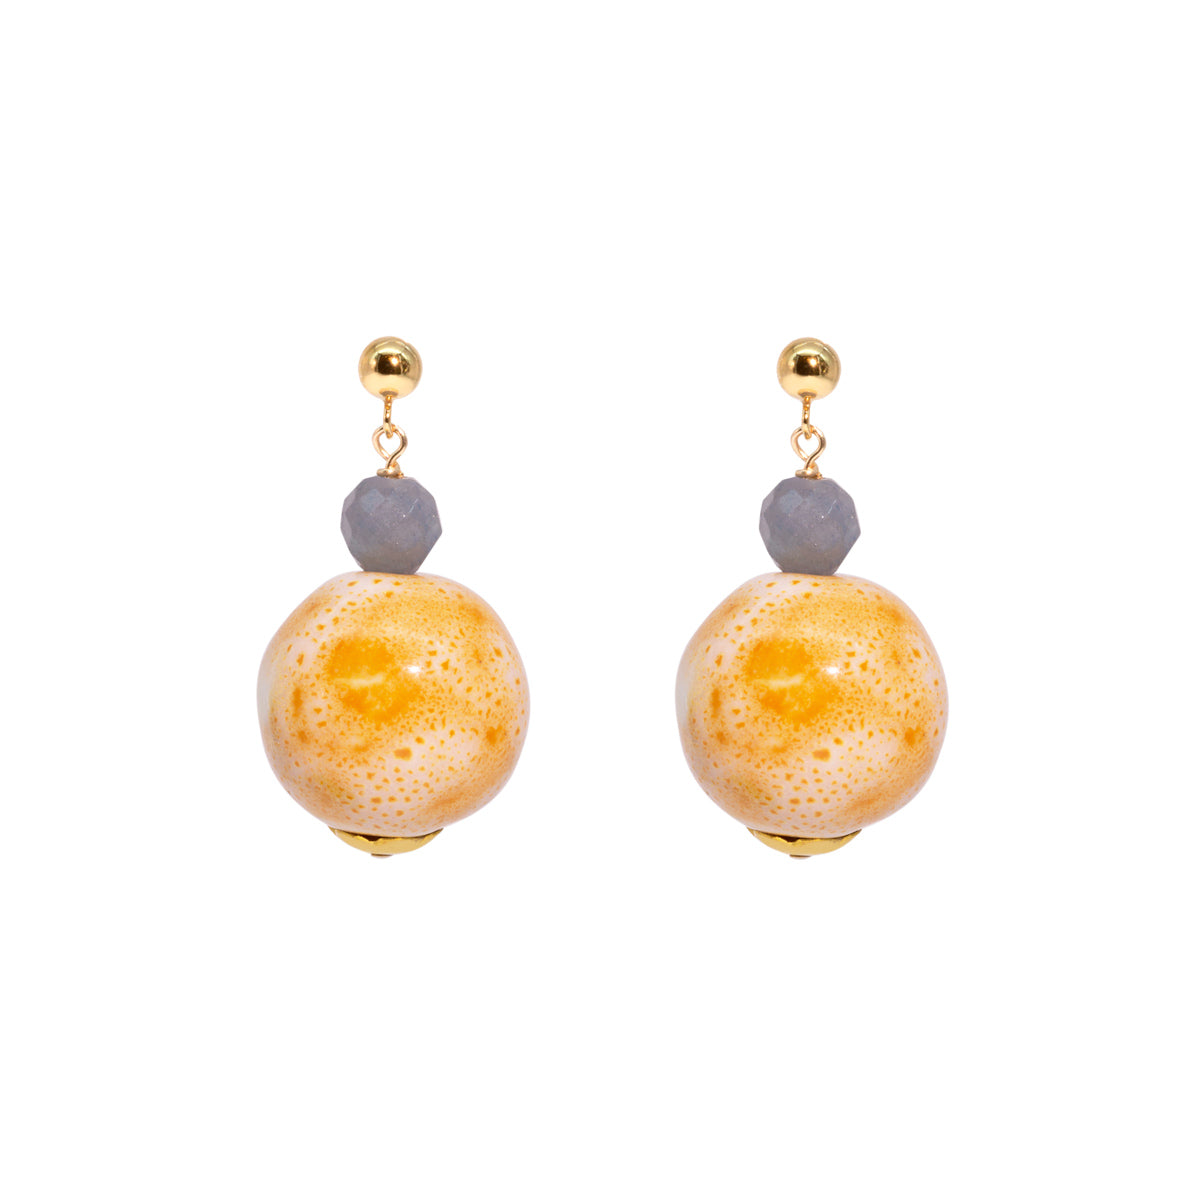 The Gold Jelly Tot Earrings